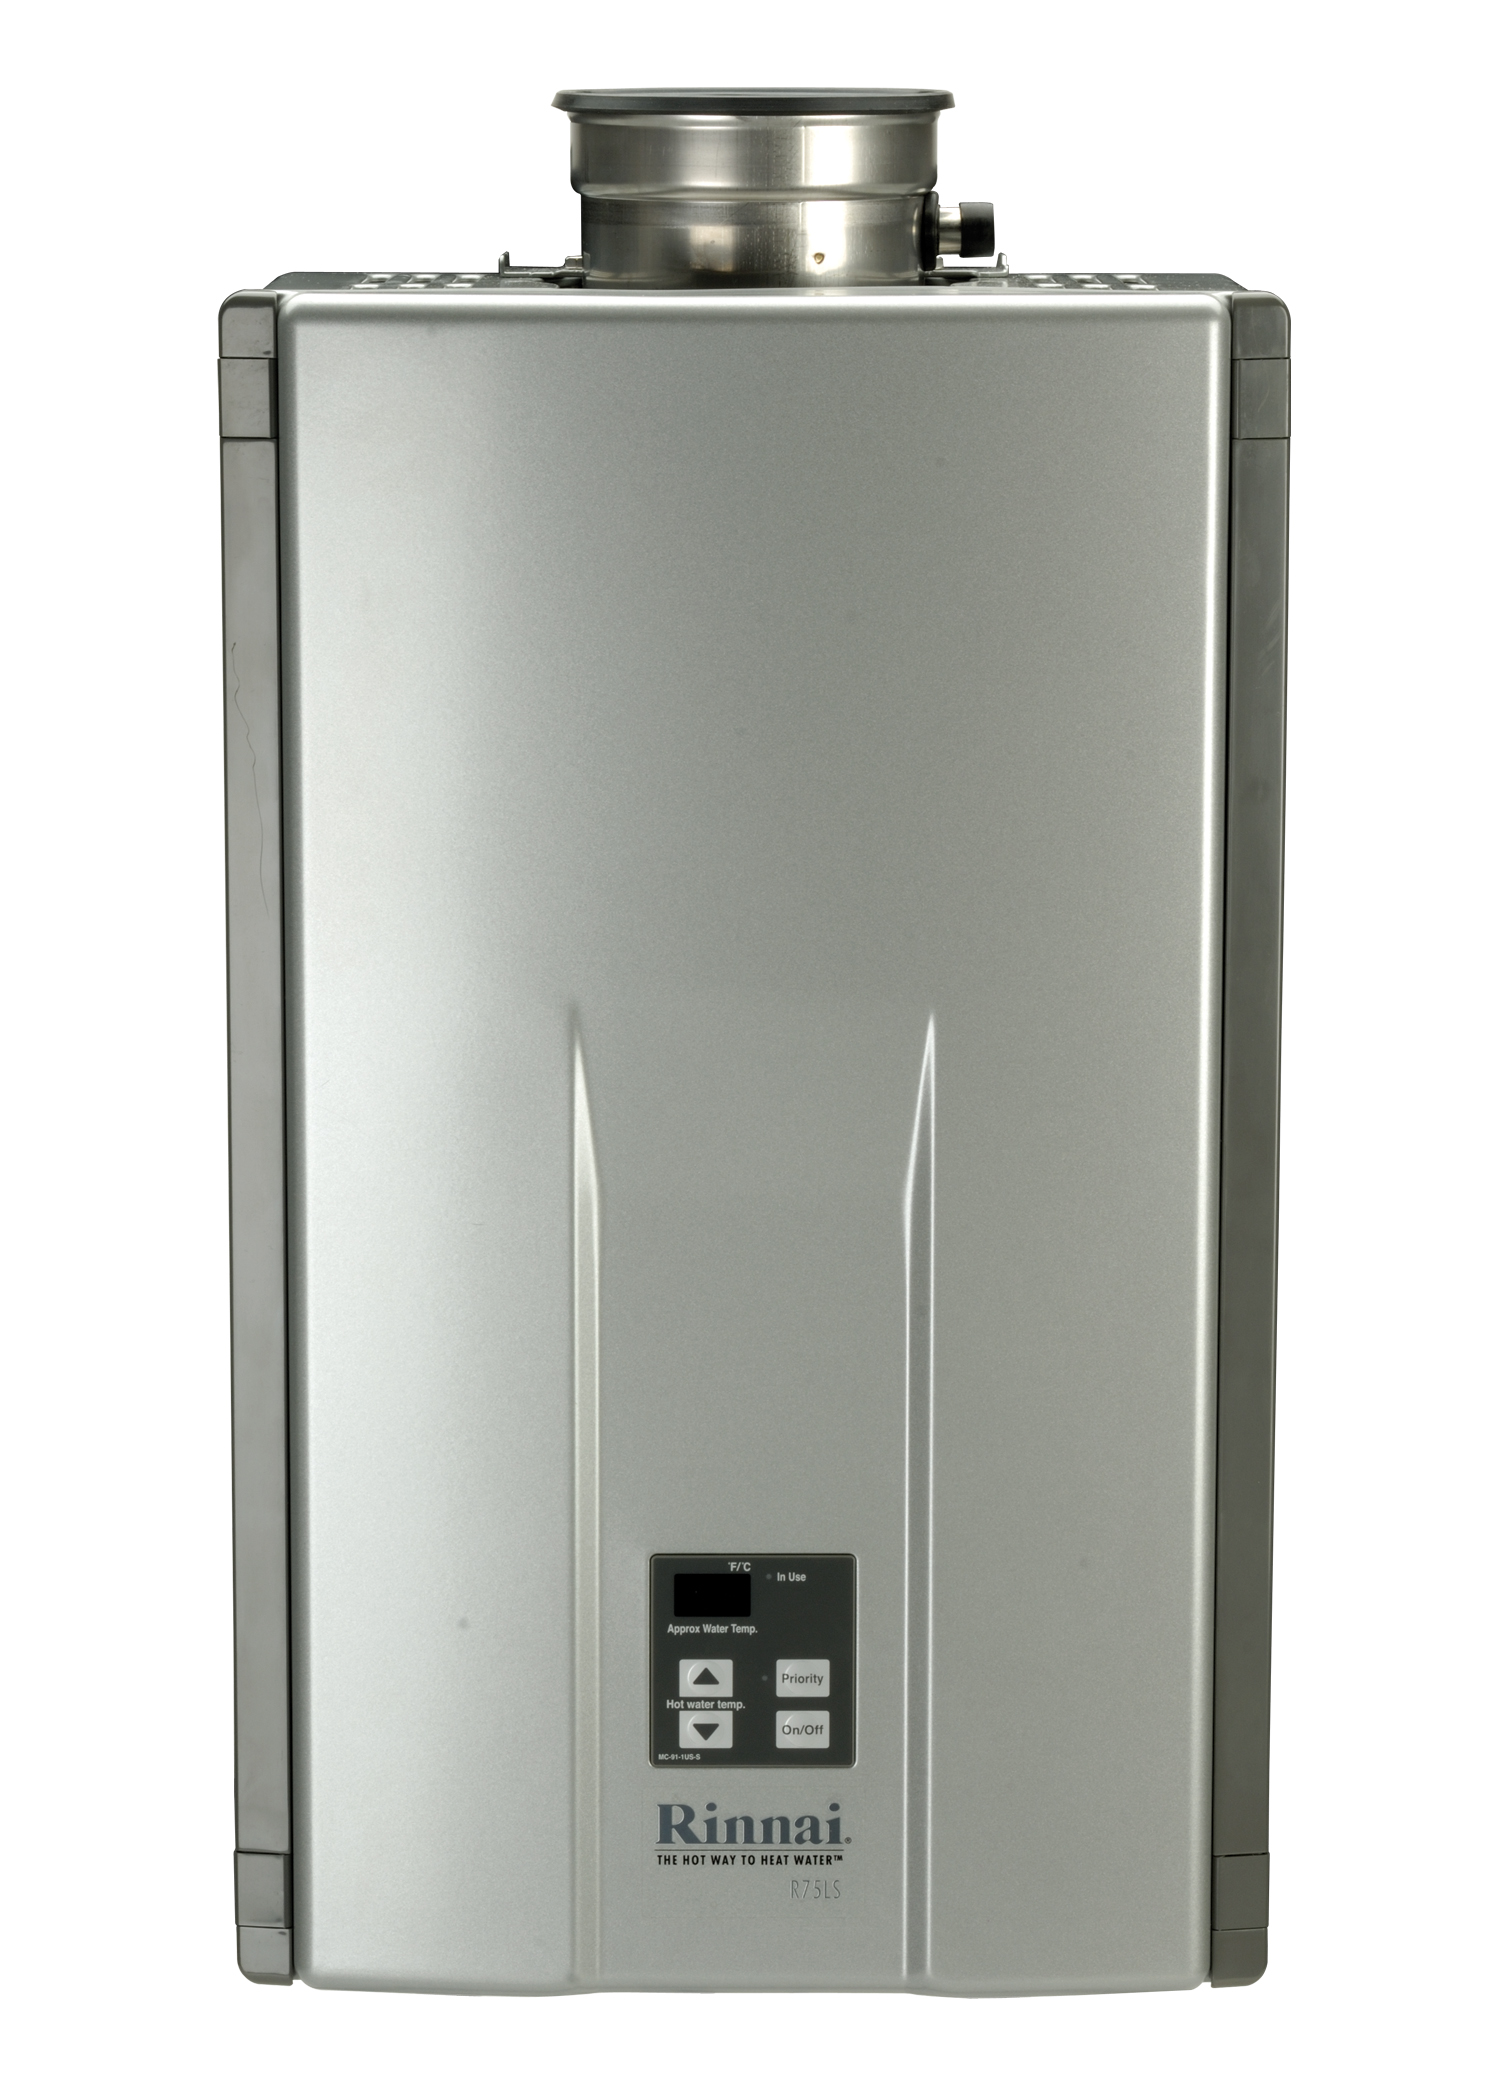 Rinnai Water Heater 74